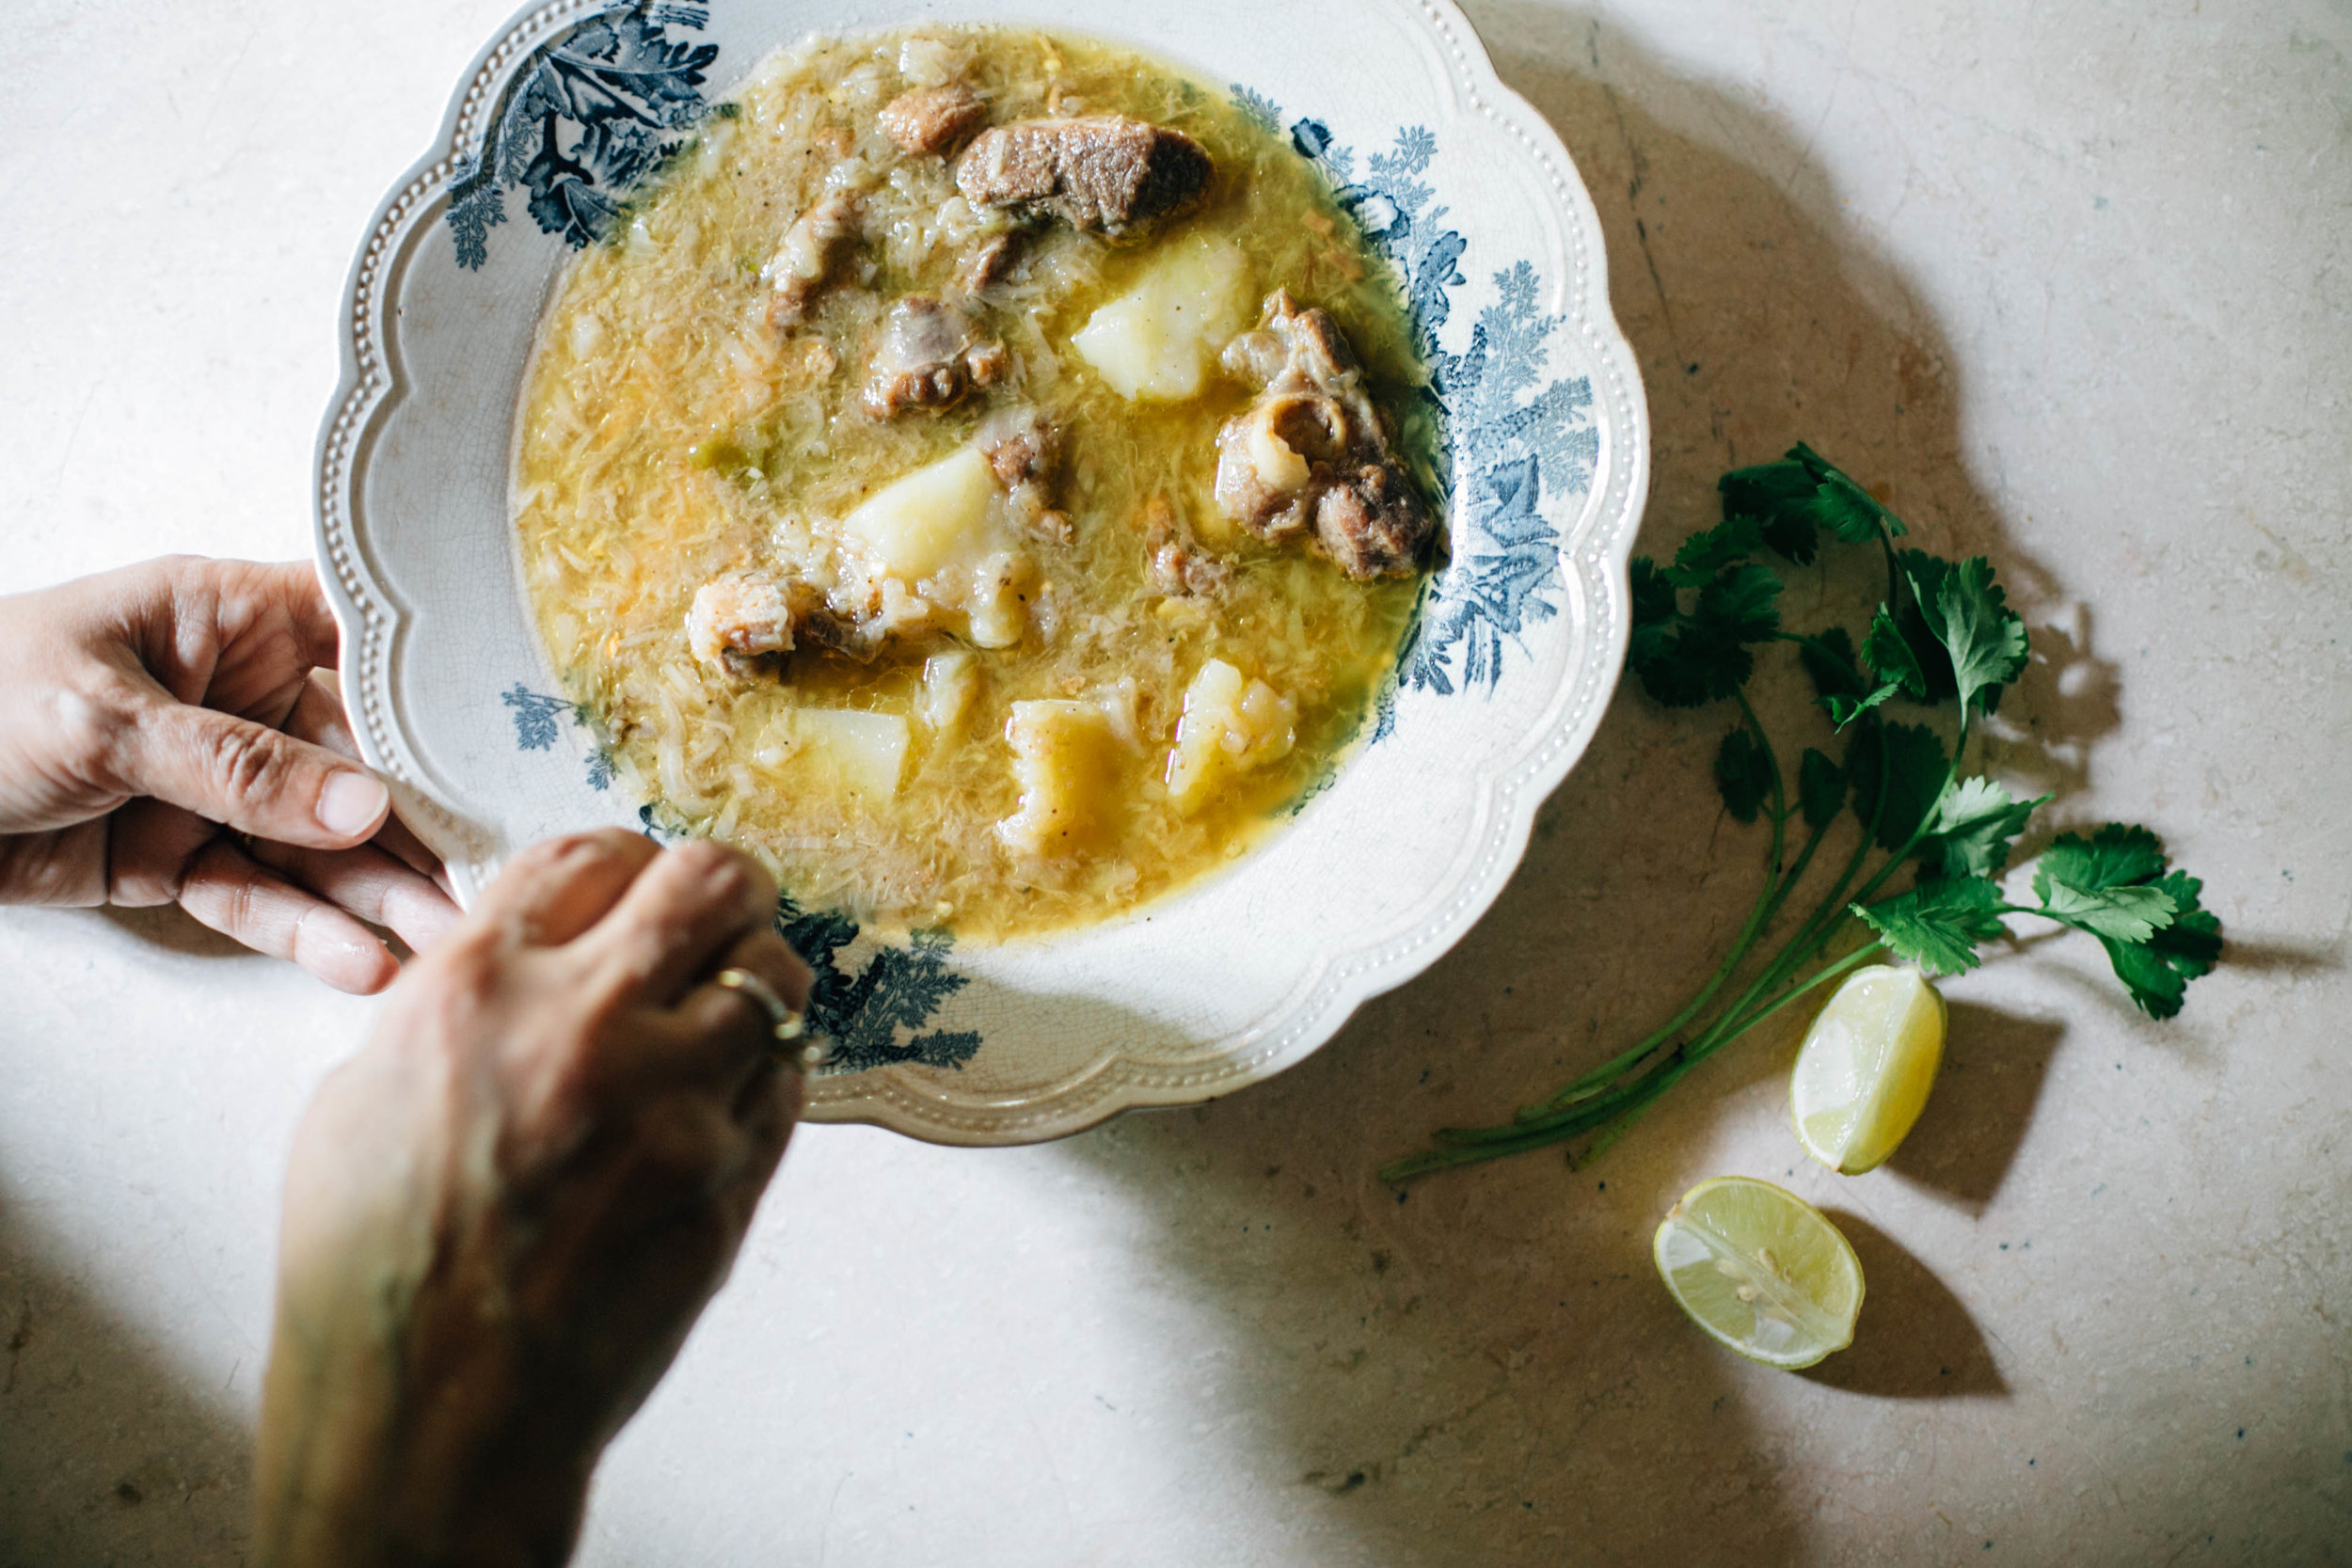 Recipe for Mappila mutton stew for #1000Kitchens